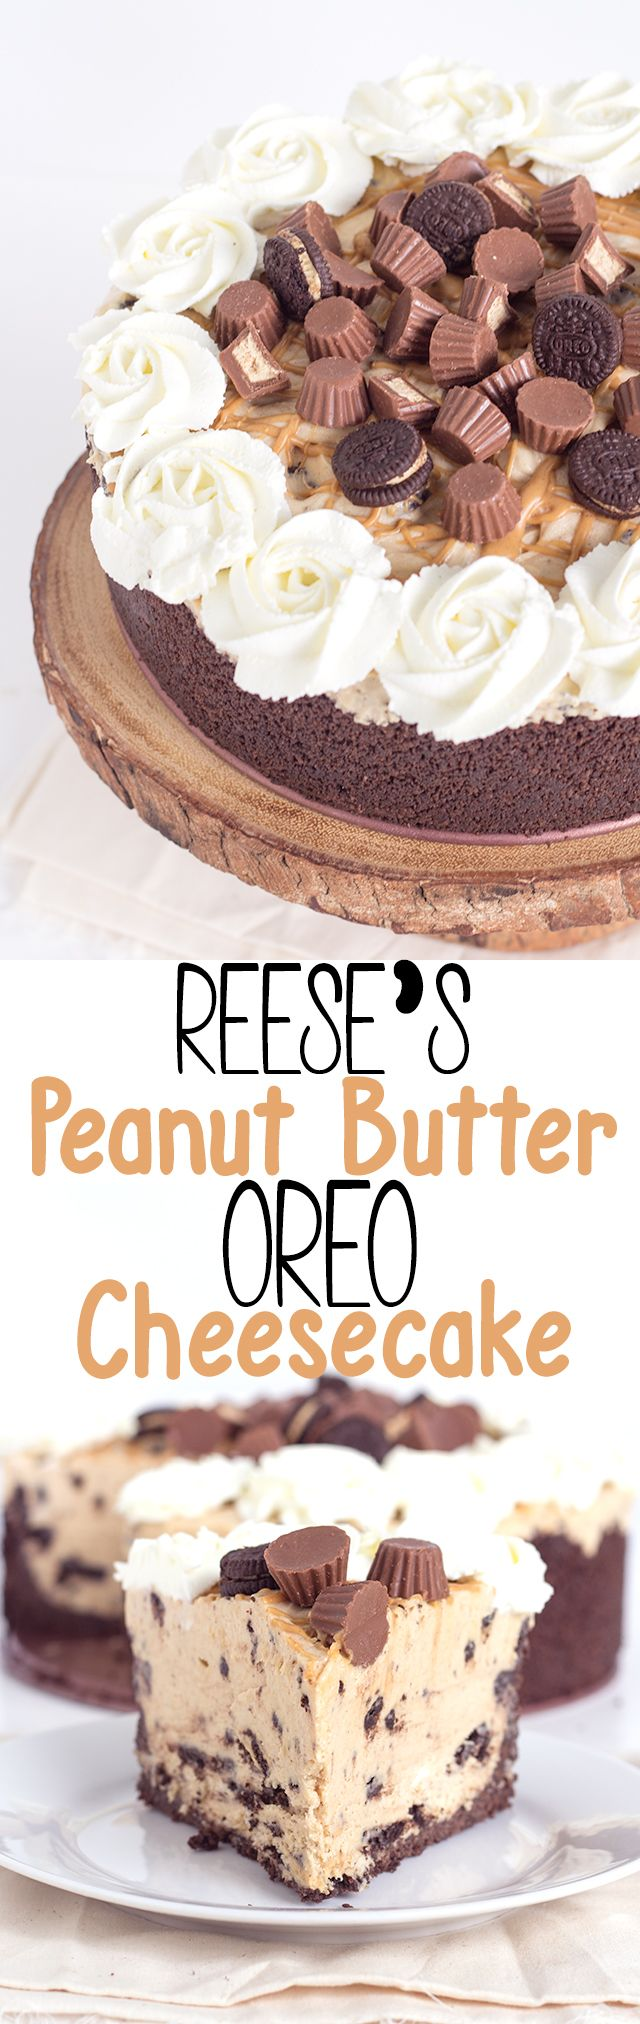 Delicious no bake reese's peanut butter oreo cheesecake. If you love peanut butter and cookies, this cheesecake is made just for you. It's so simple to make